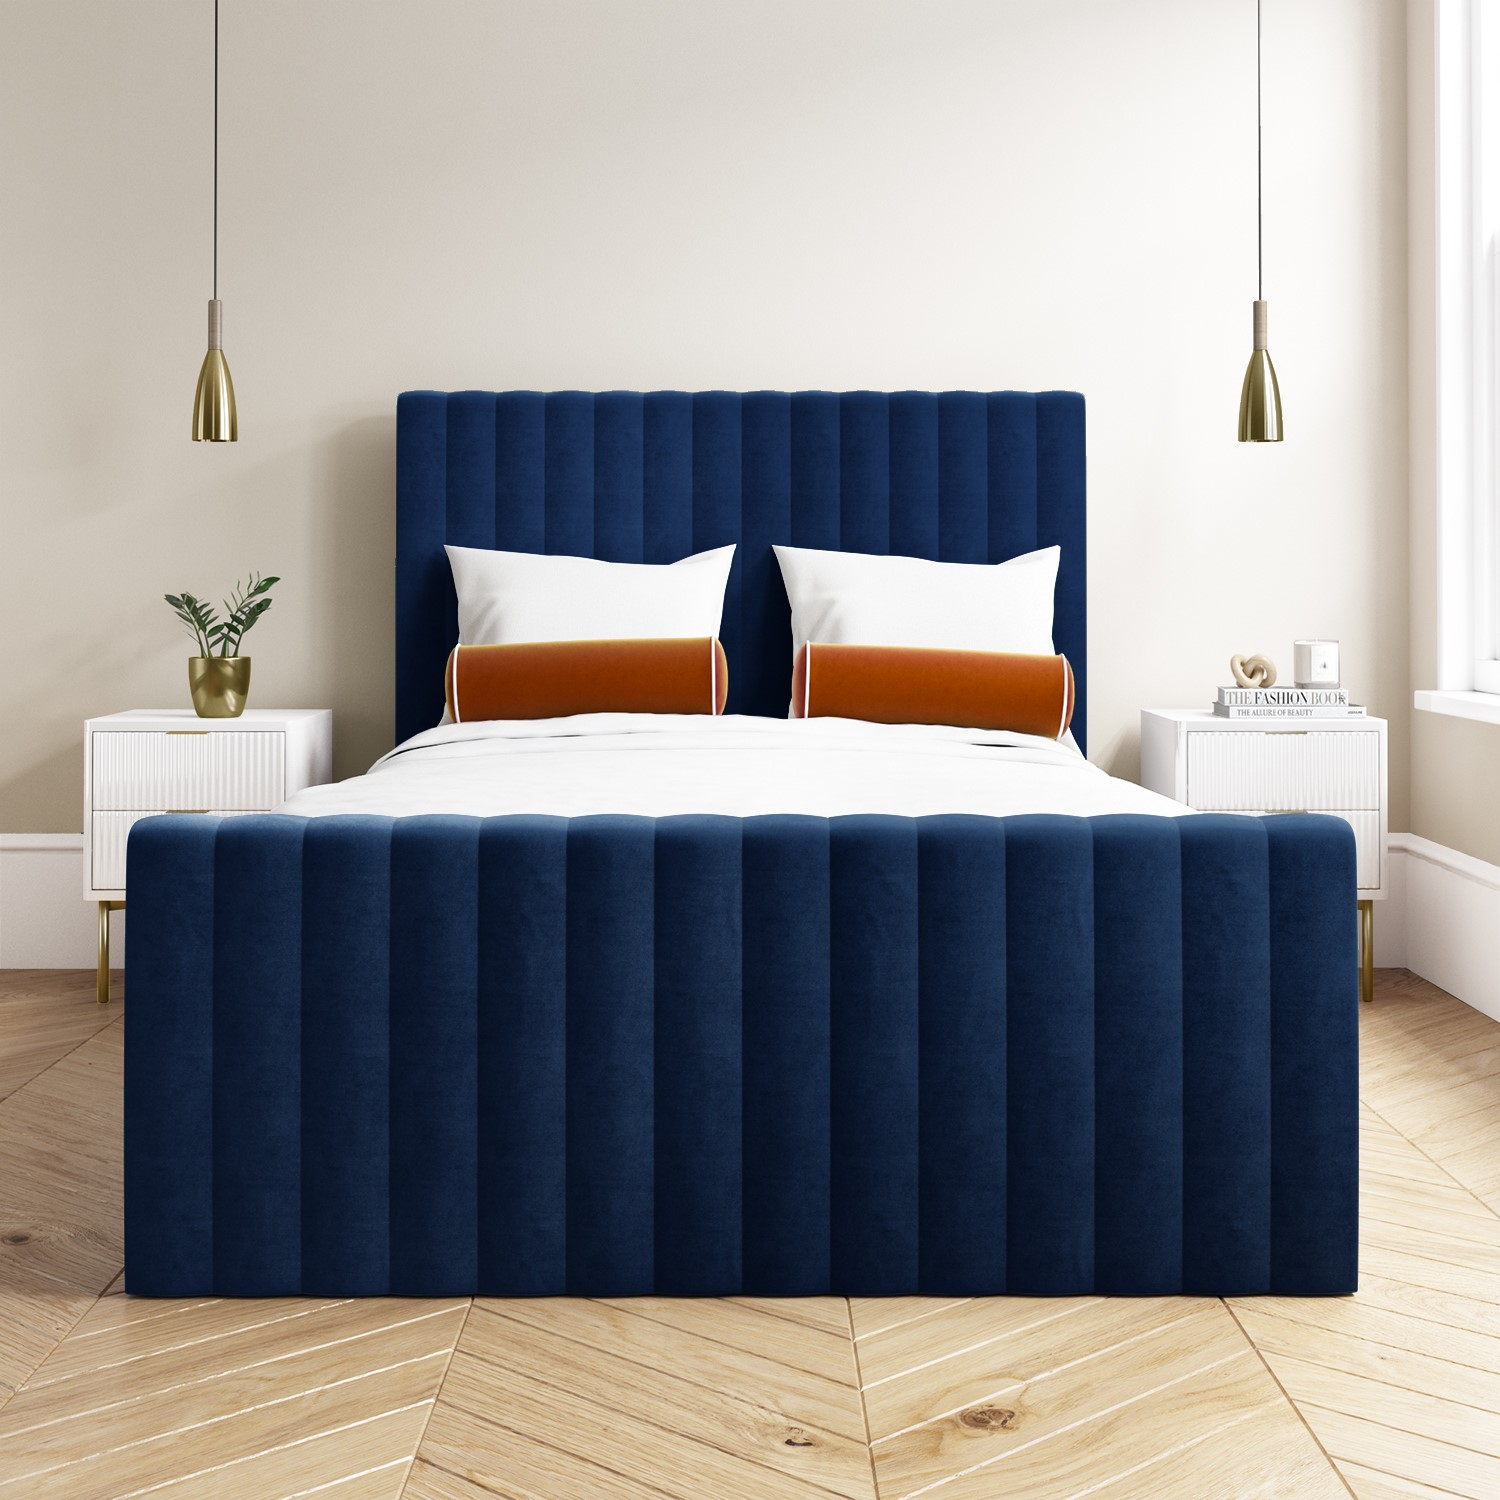 Prime Details About Double Velvet Ottoman Bed In Navy Blue Side Storage Creativecarmelina Interior Chair Design Creativecarmelinacom